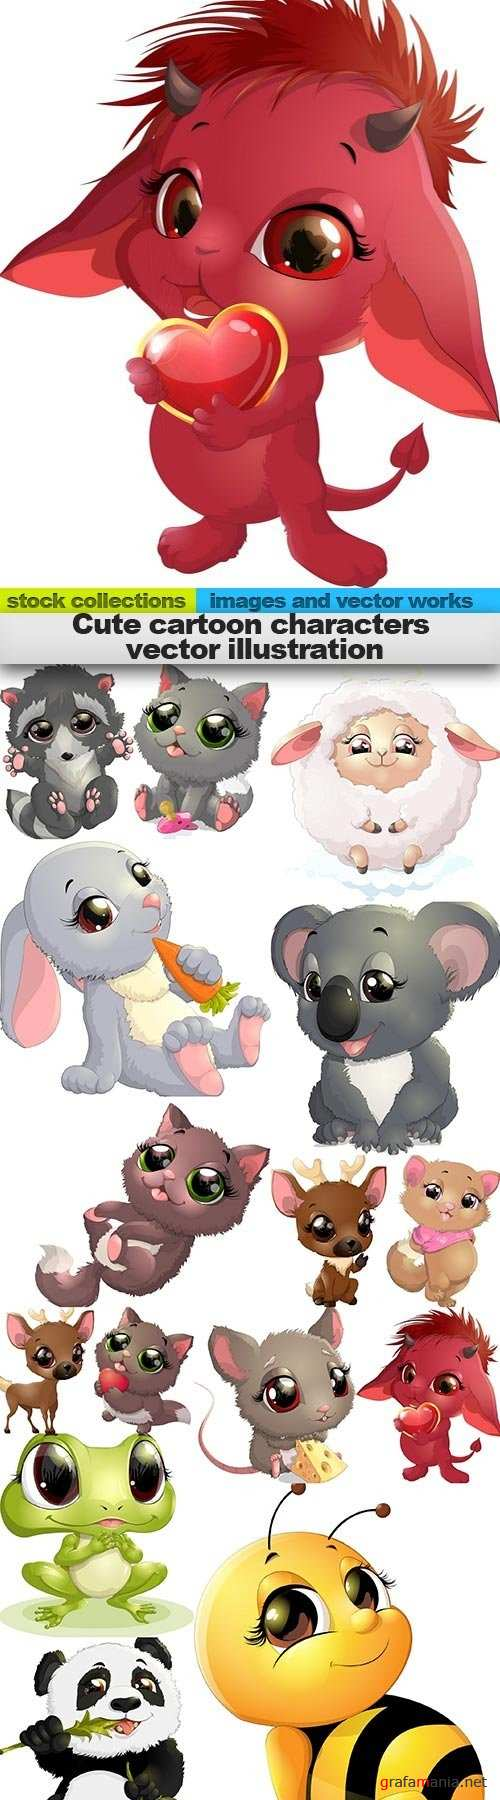 Cute cartoon characters vector illustration, 15 x EPS